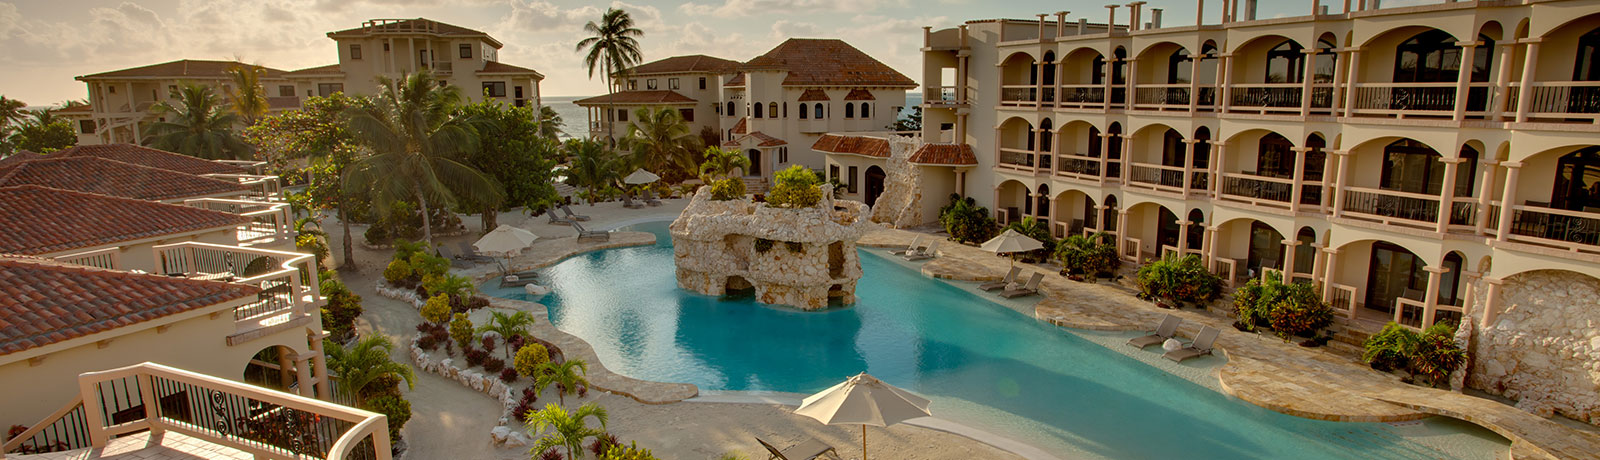 Belize Coco Beach Resort Vacation